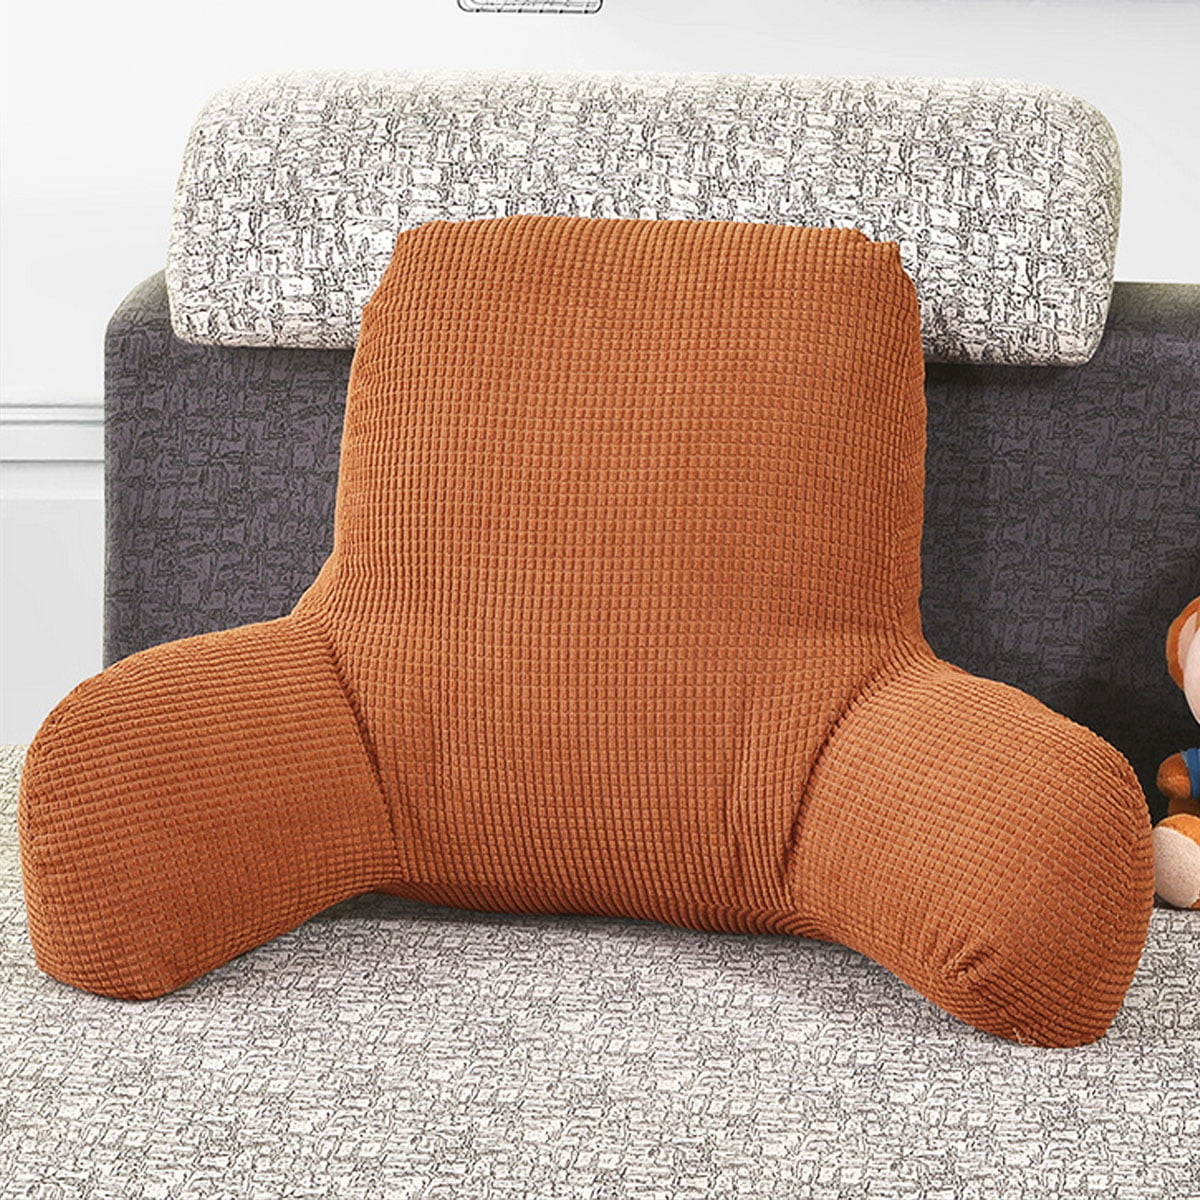 Comfort Micro Bed Rest Reading And Bedrest Lounger Sitting Support Pillow Soft But Firmly Stuffed Pp Cotton Fill Backrest Pillow With Arms Walmart Canada